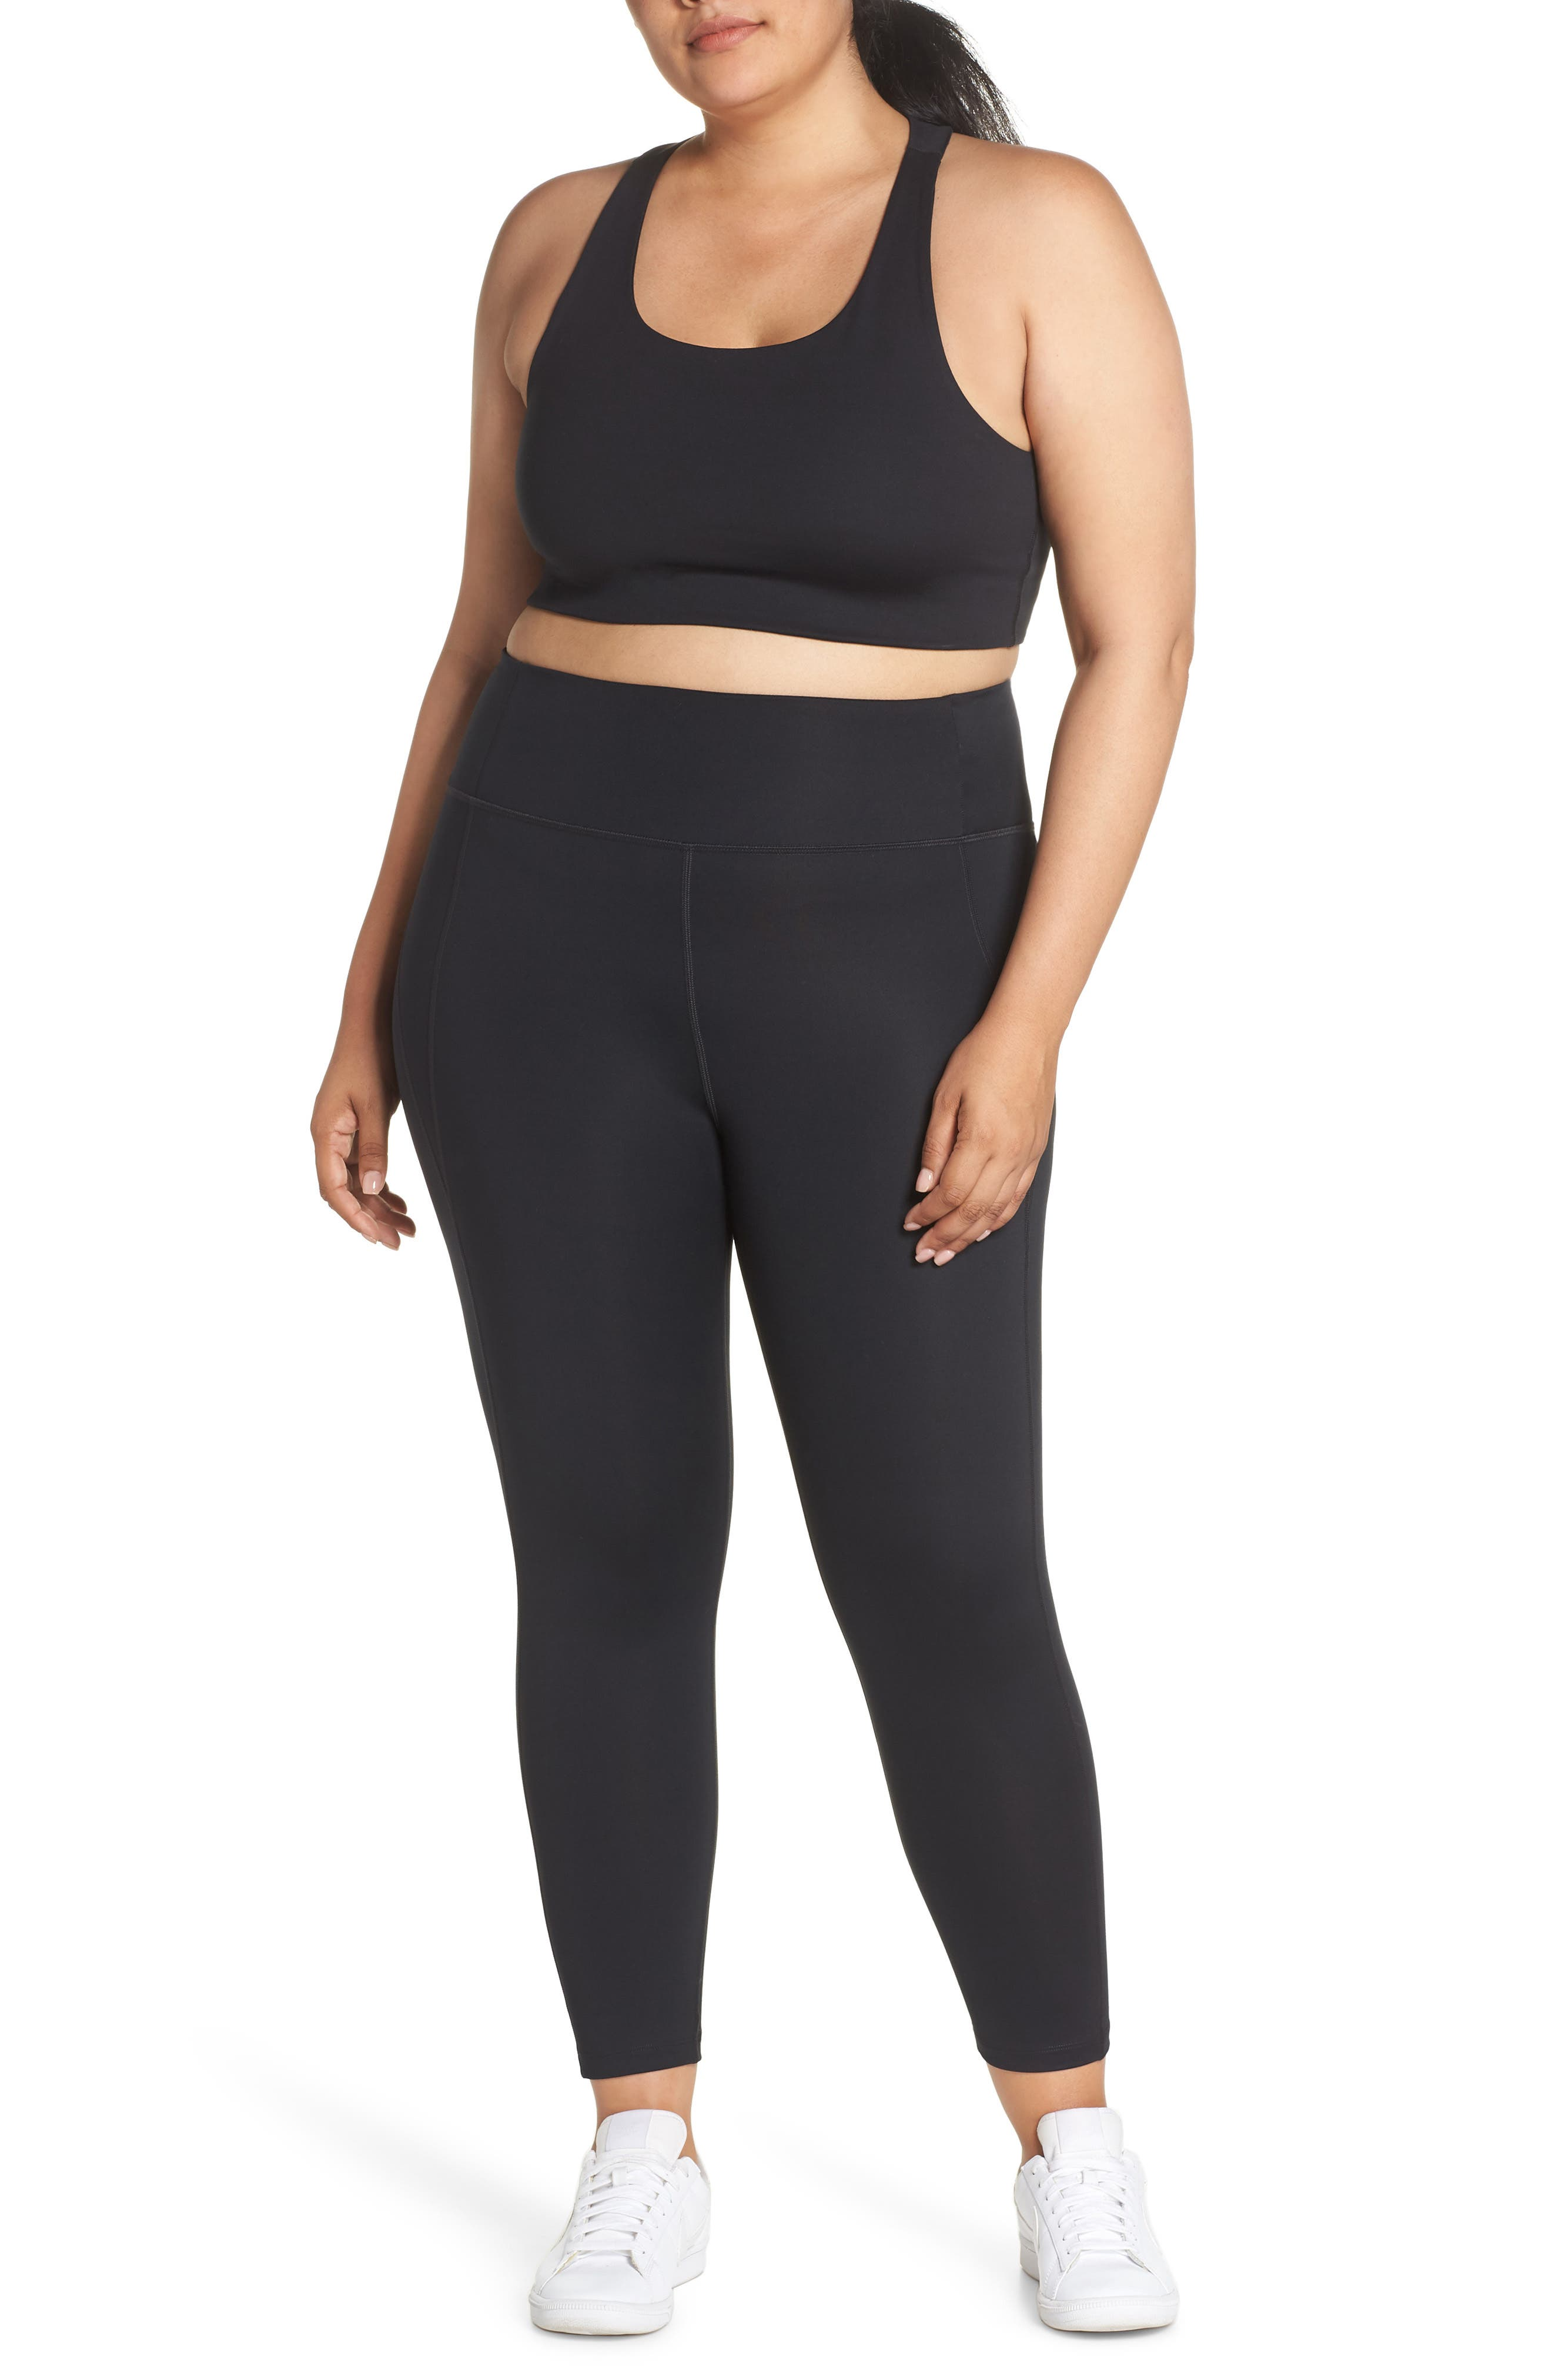 GIRLFRIEND COLLECTIVE, Cropped Paloma Sports Bra, Alternate thumbnail 14, color, 001